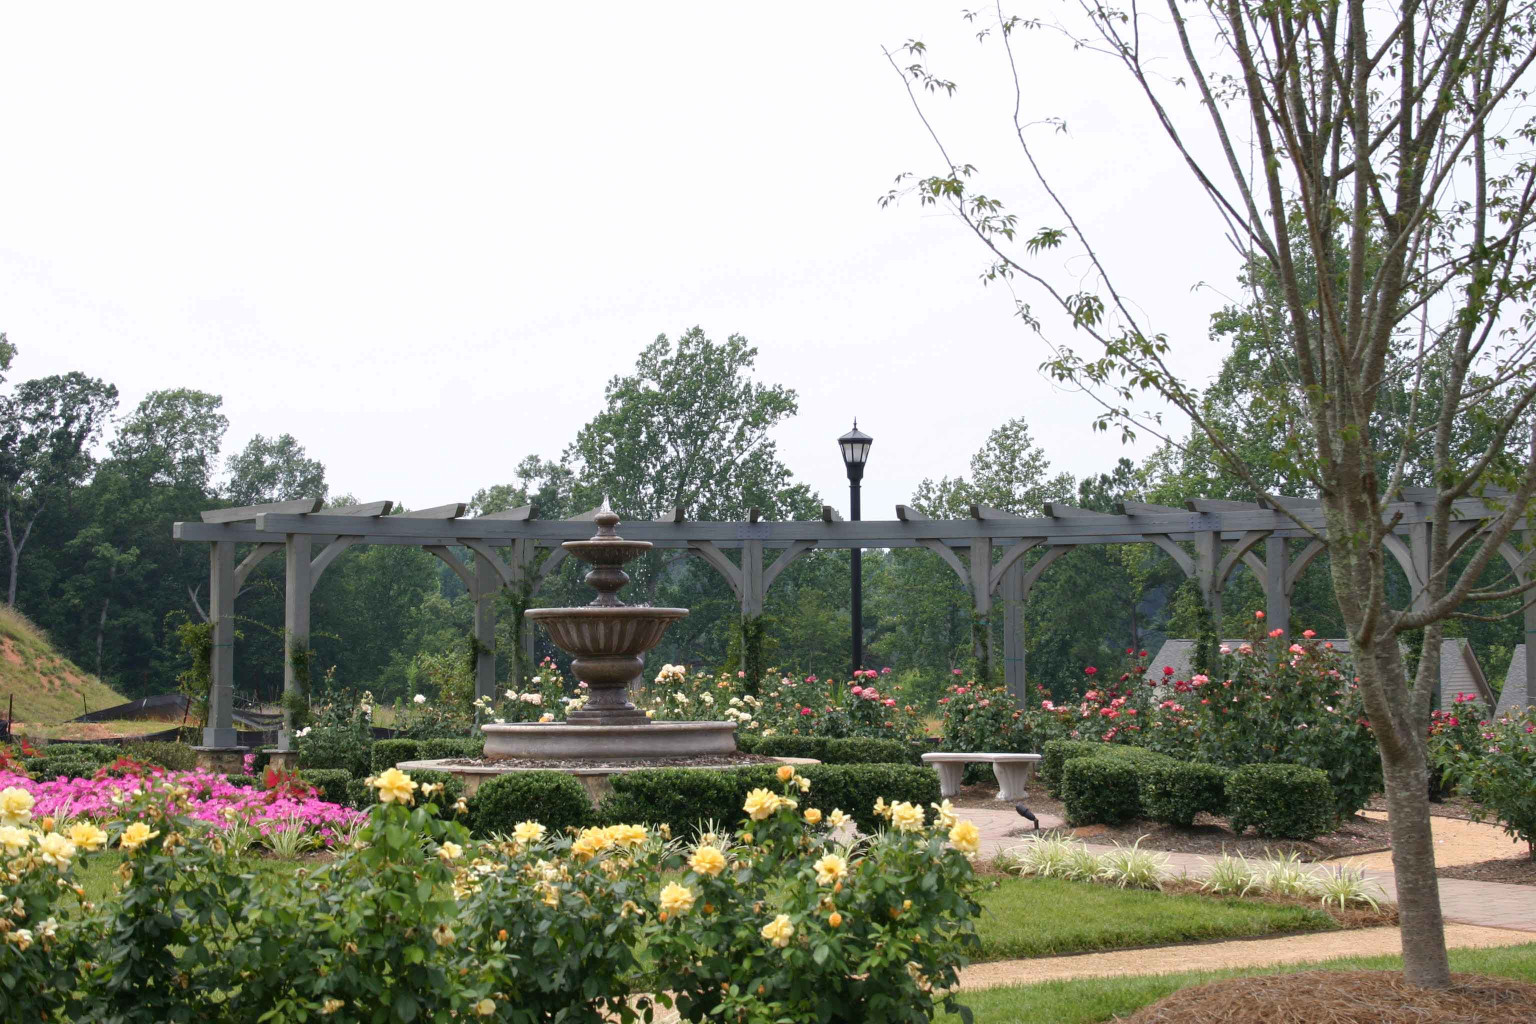 This wood arbor was custom designed for this rose garden.